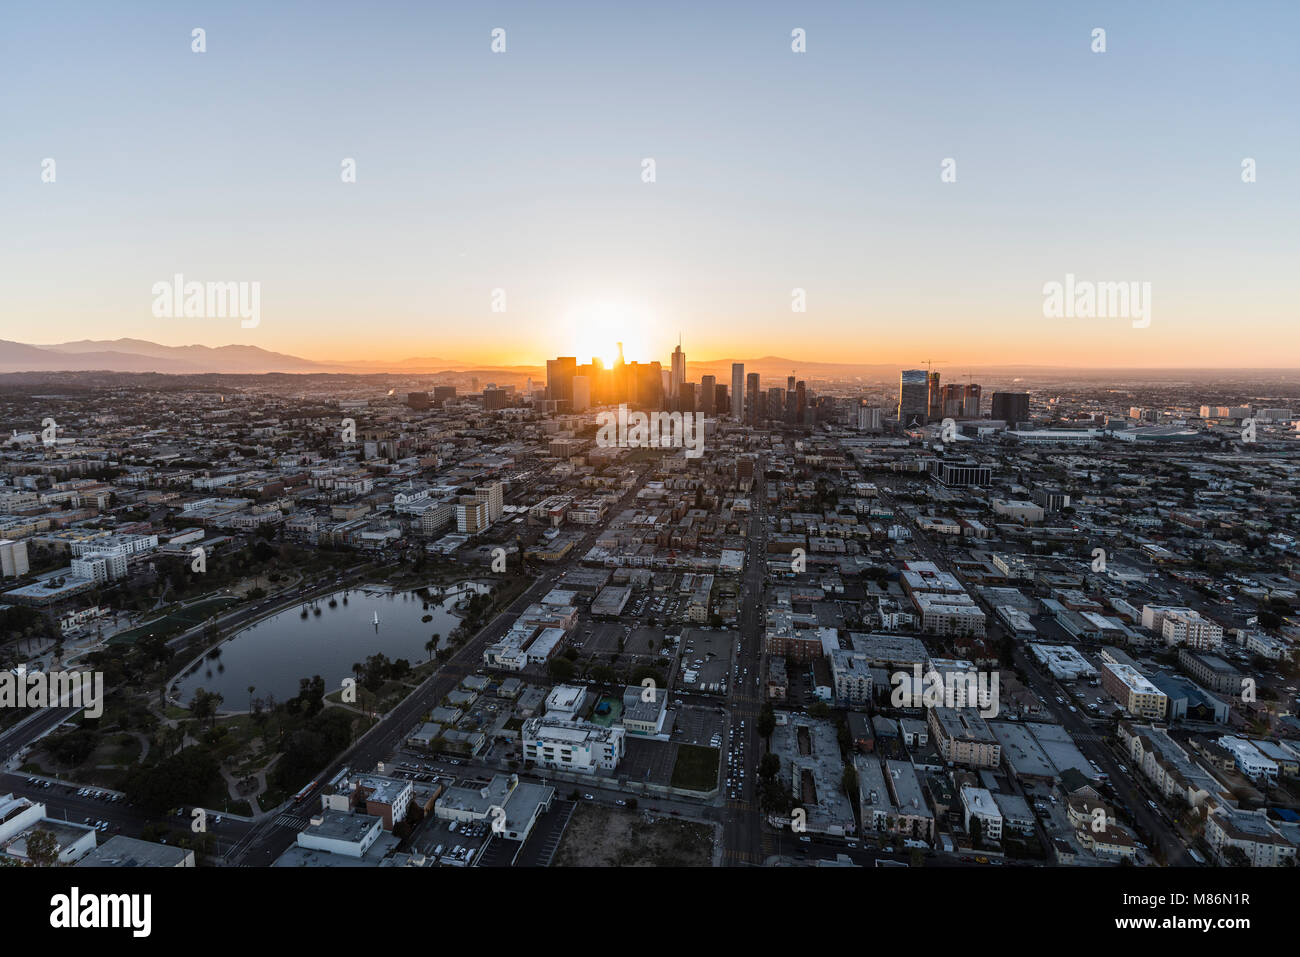 Los Angeles, California, USA - February 20, 2018:  Aerial morning view of the Westlake neighborhood, MacArthur Park - Stock Image